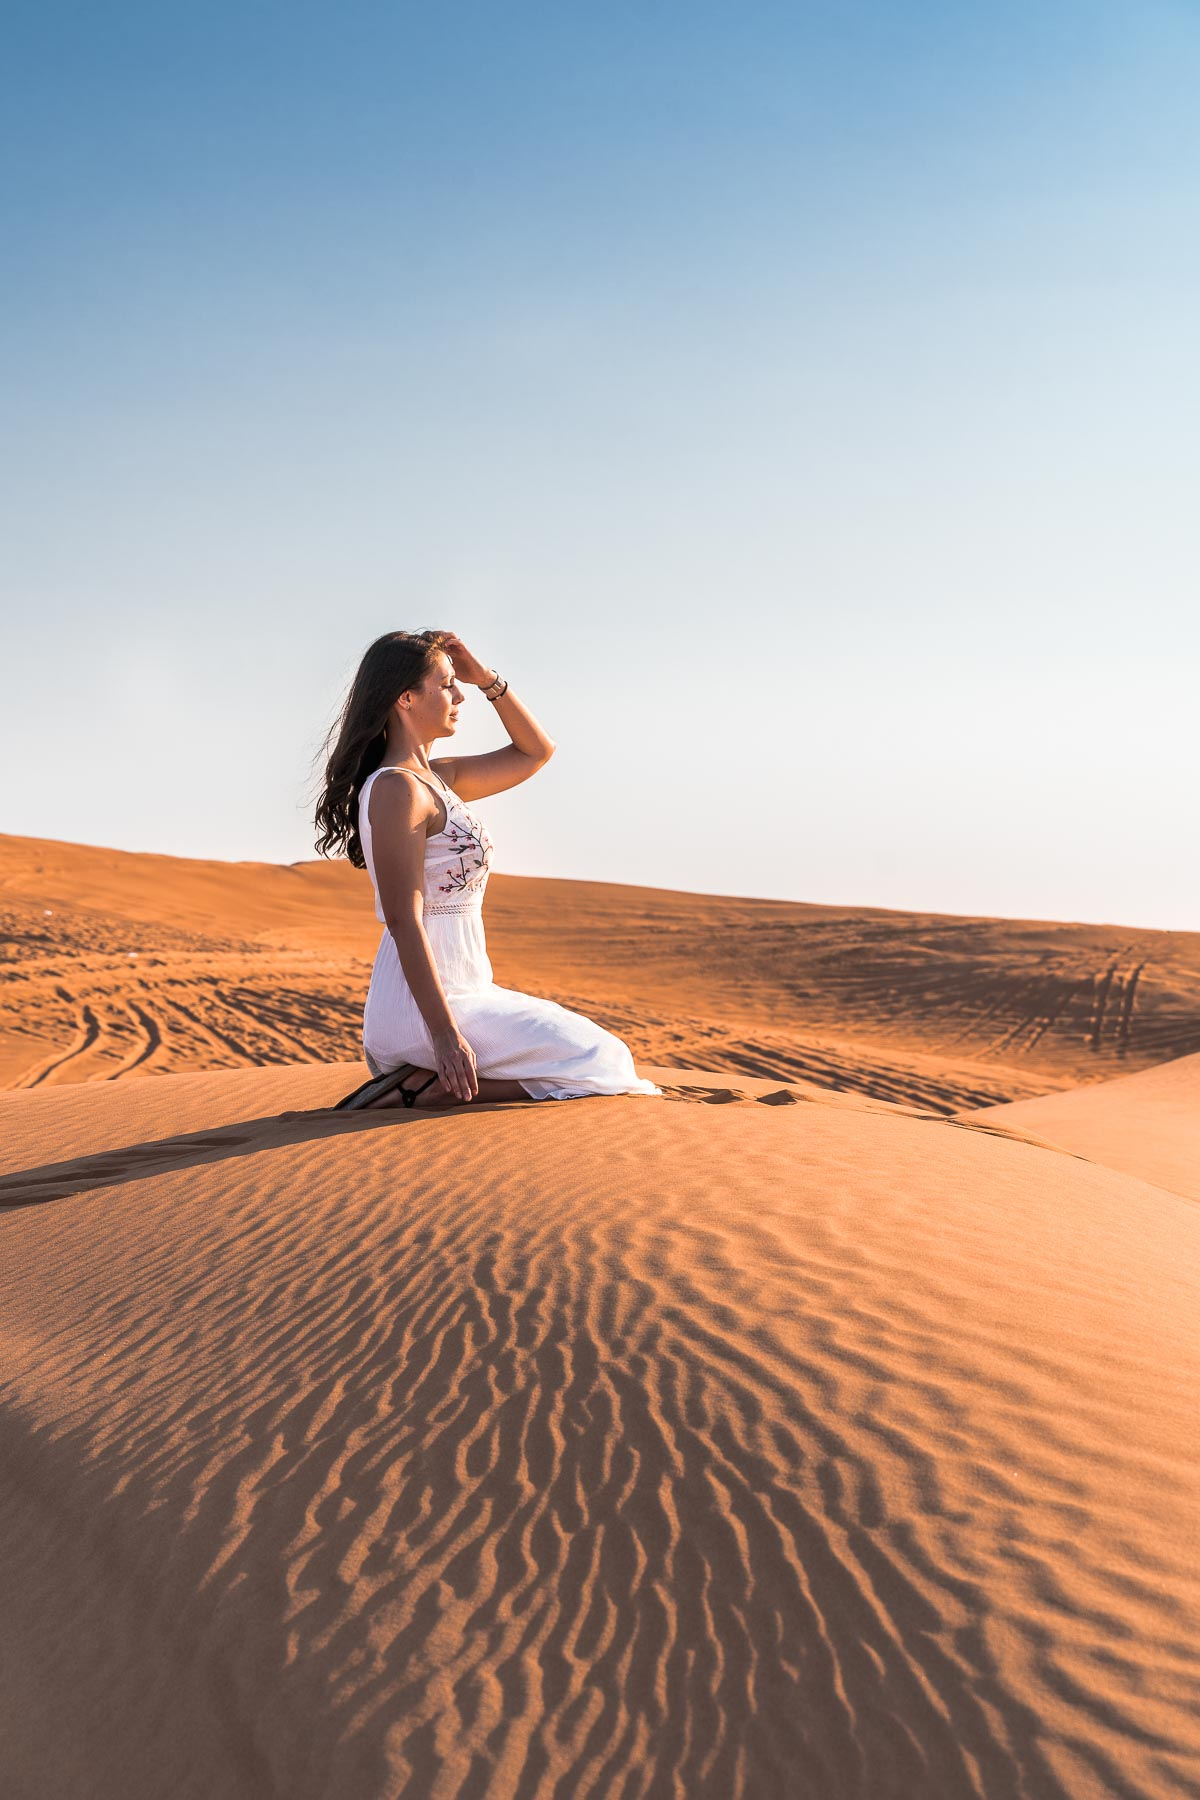 Girl in white dress sitting in the Dubai desert on the sand dunes